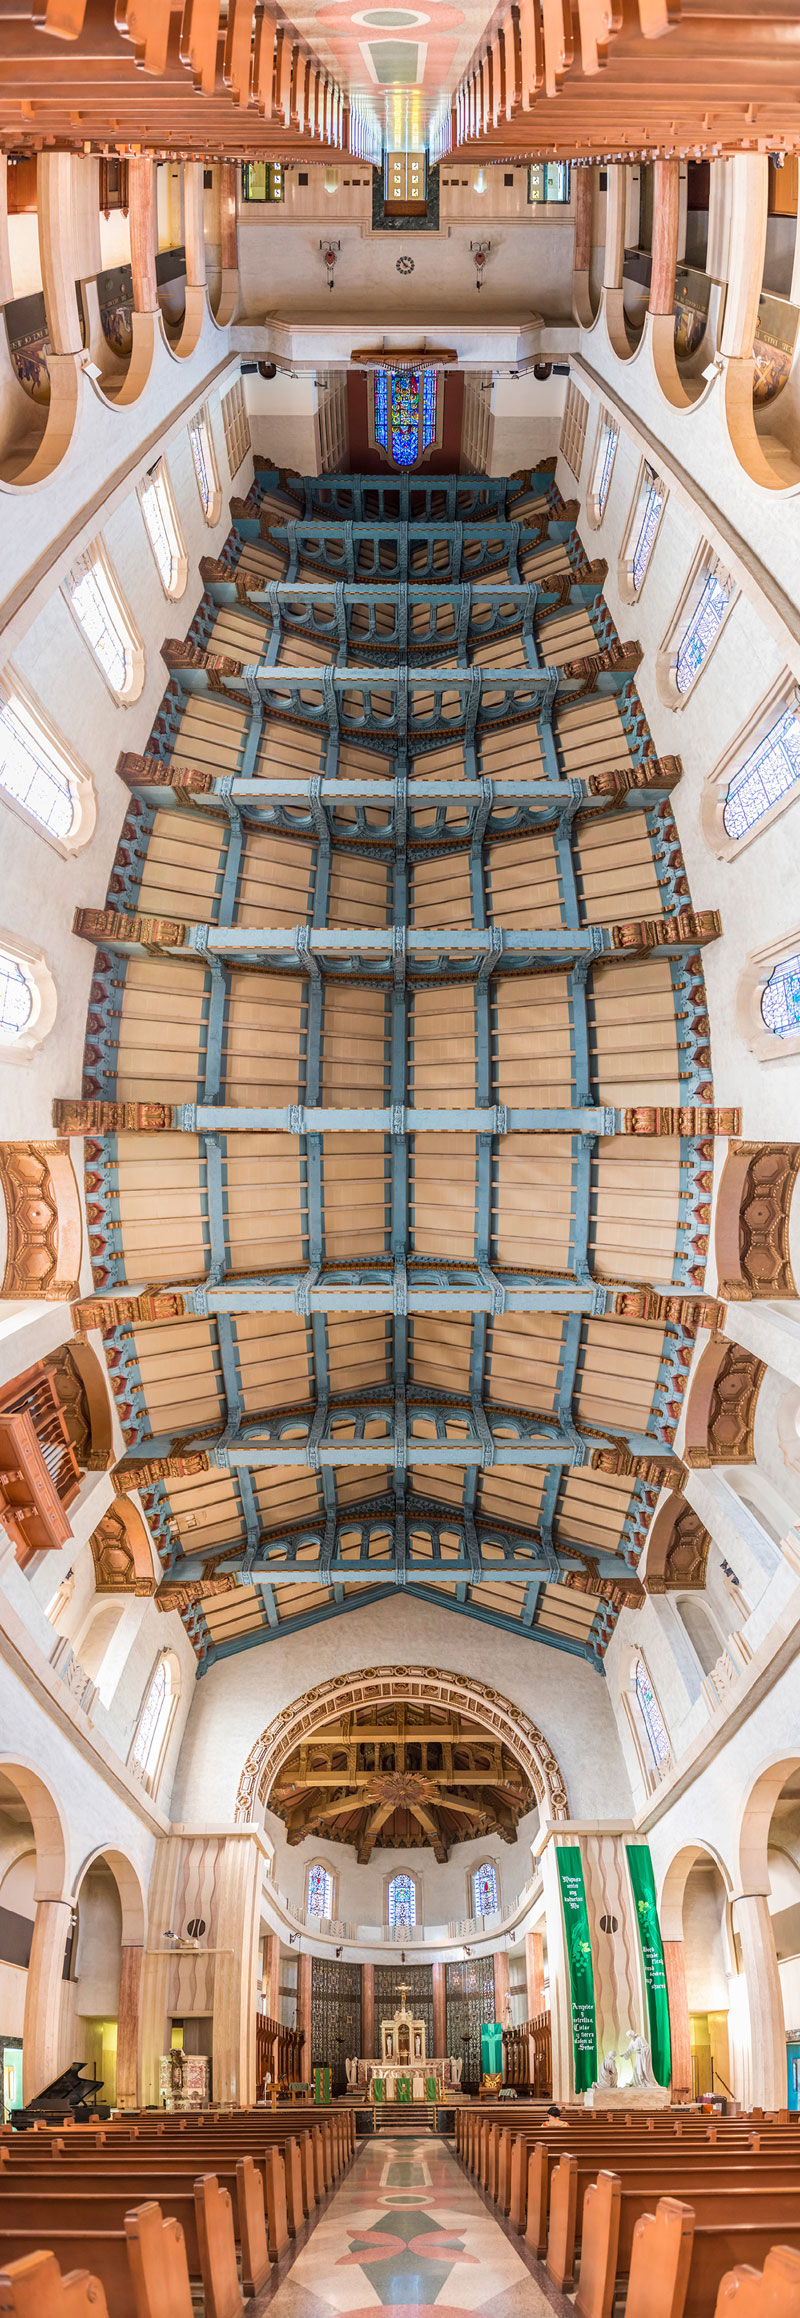 Vertical Panoramas of Church Ceilings Around the World (5)